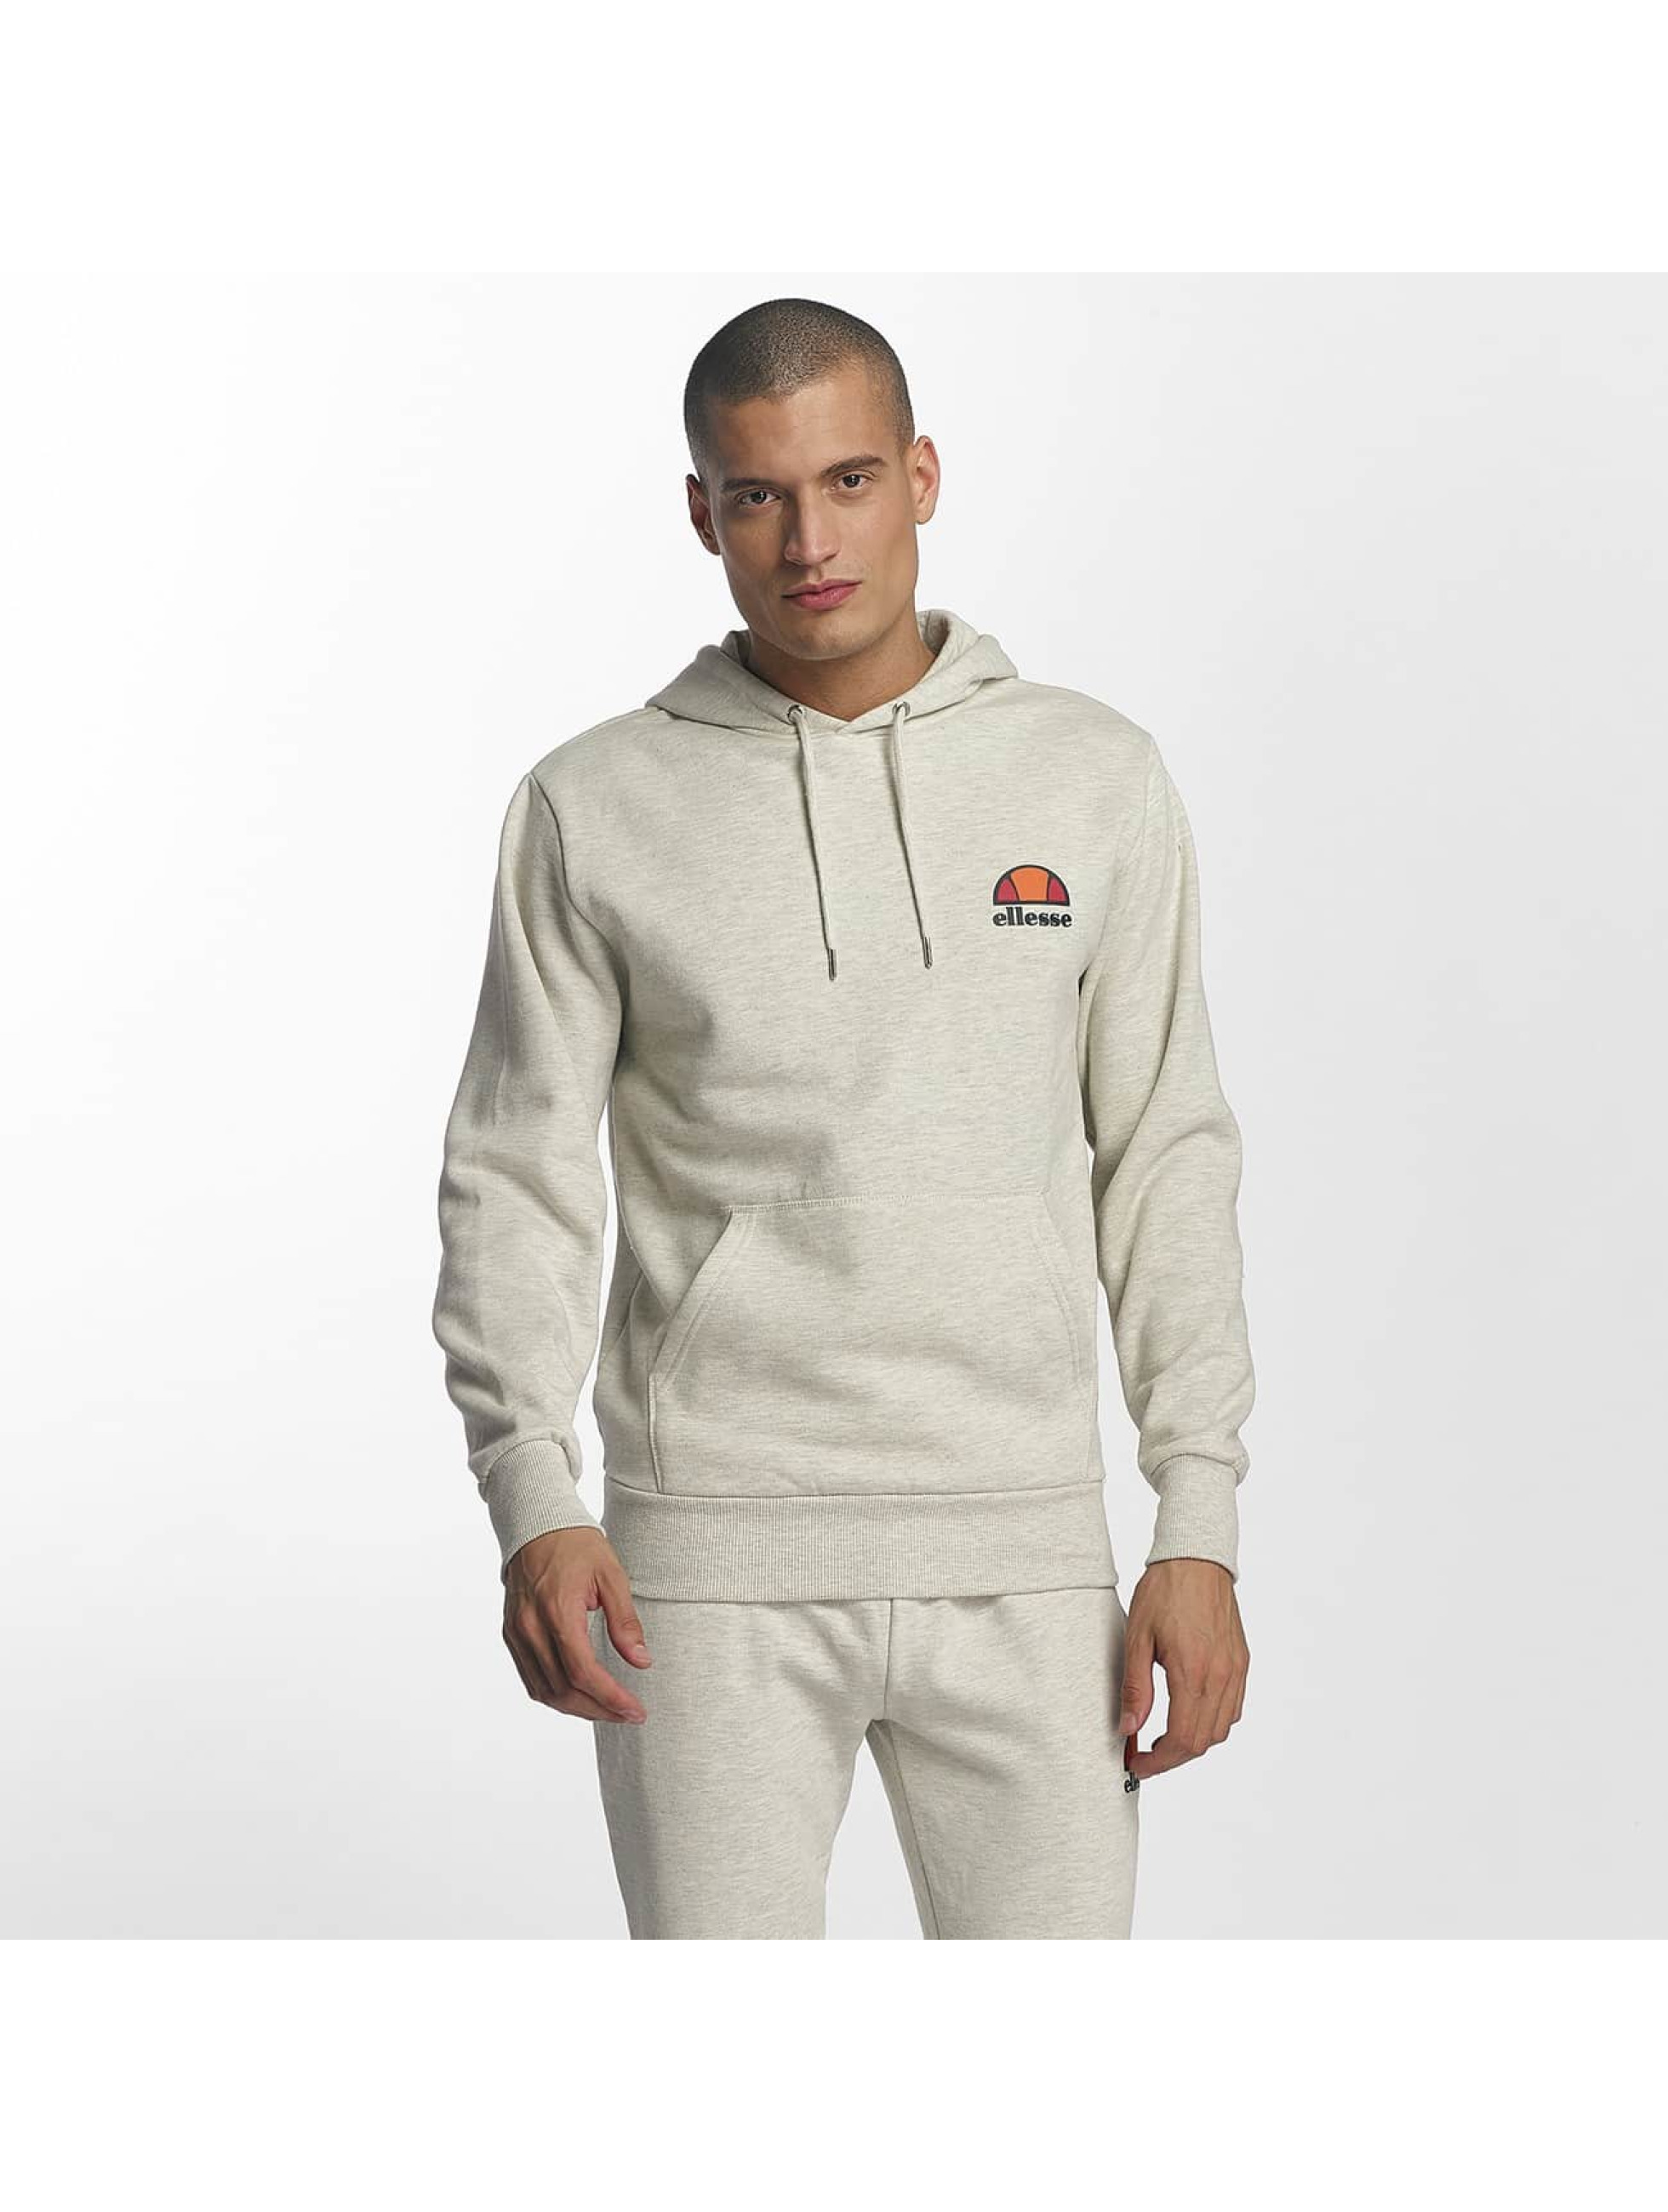 ellesse herren oberteile hoody toce ebay. Black Bedroom Furniture Sets. Home Design Ideas